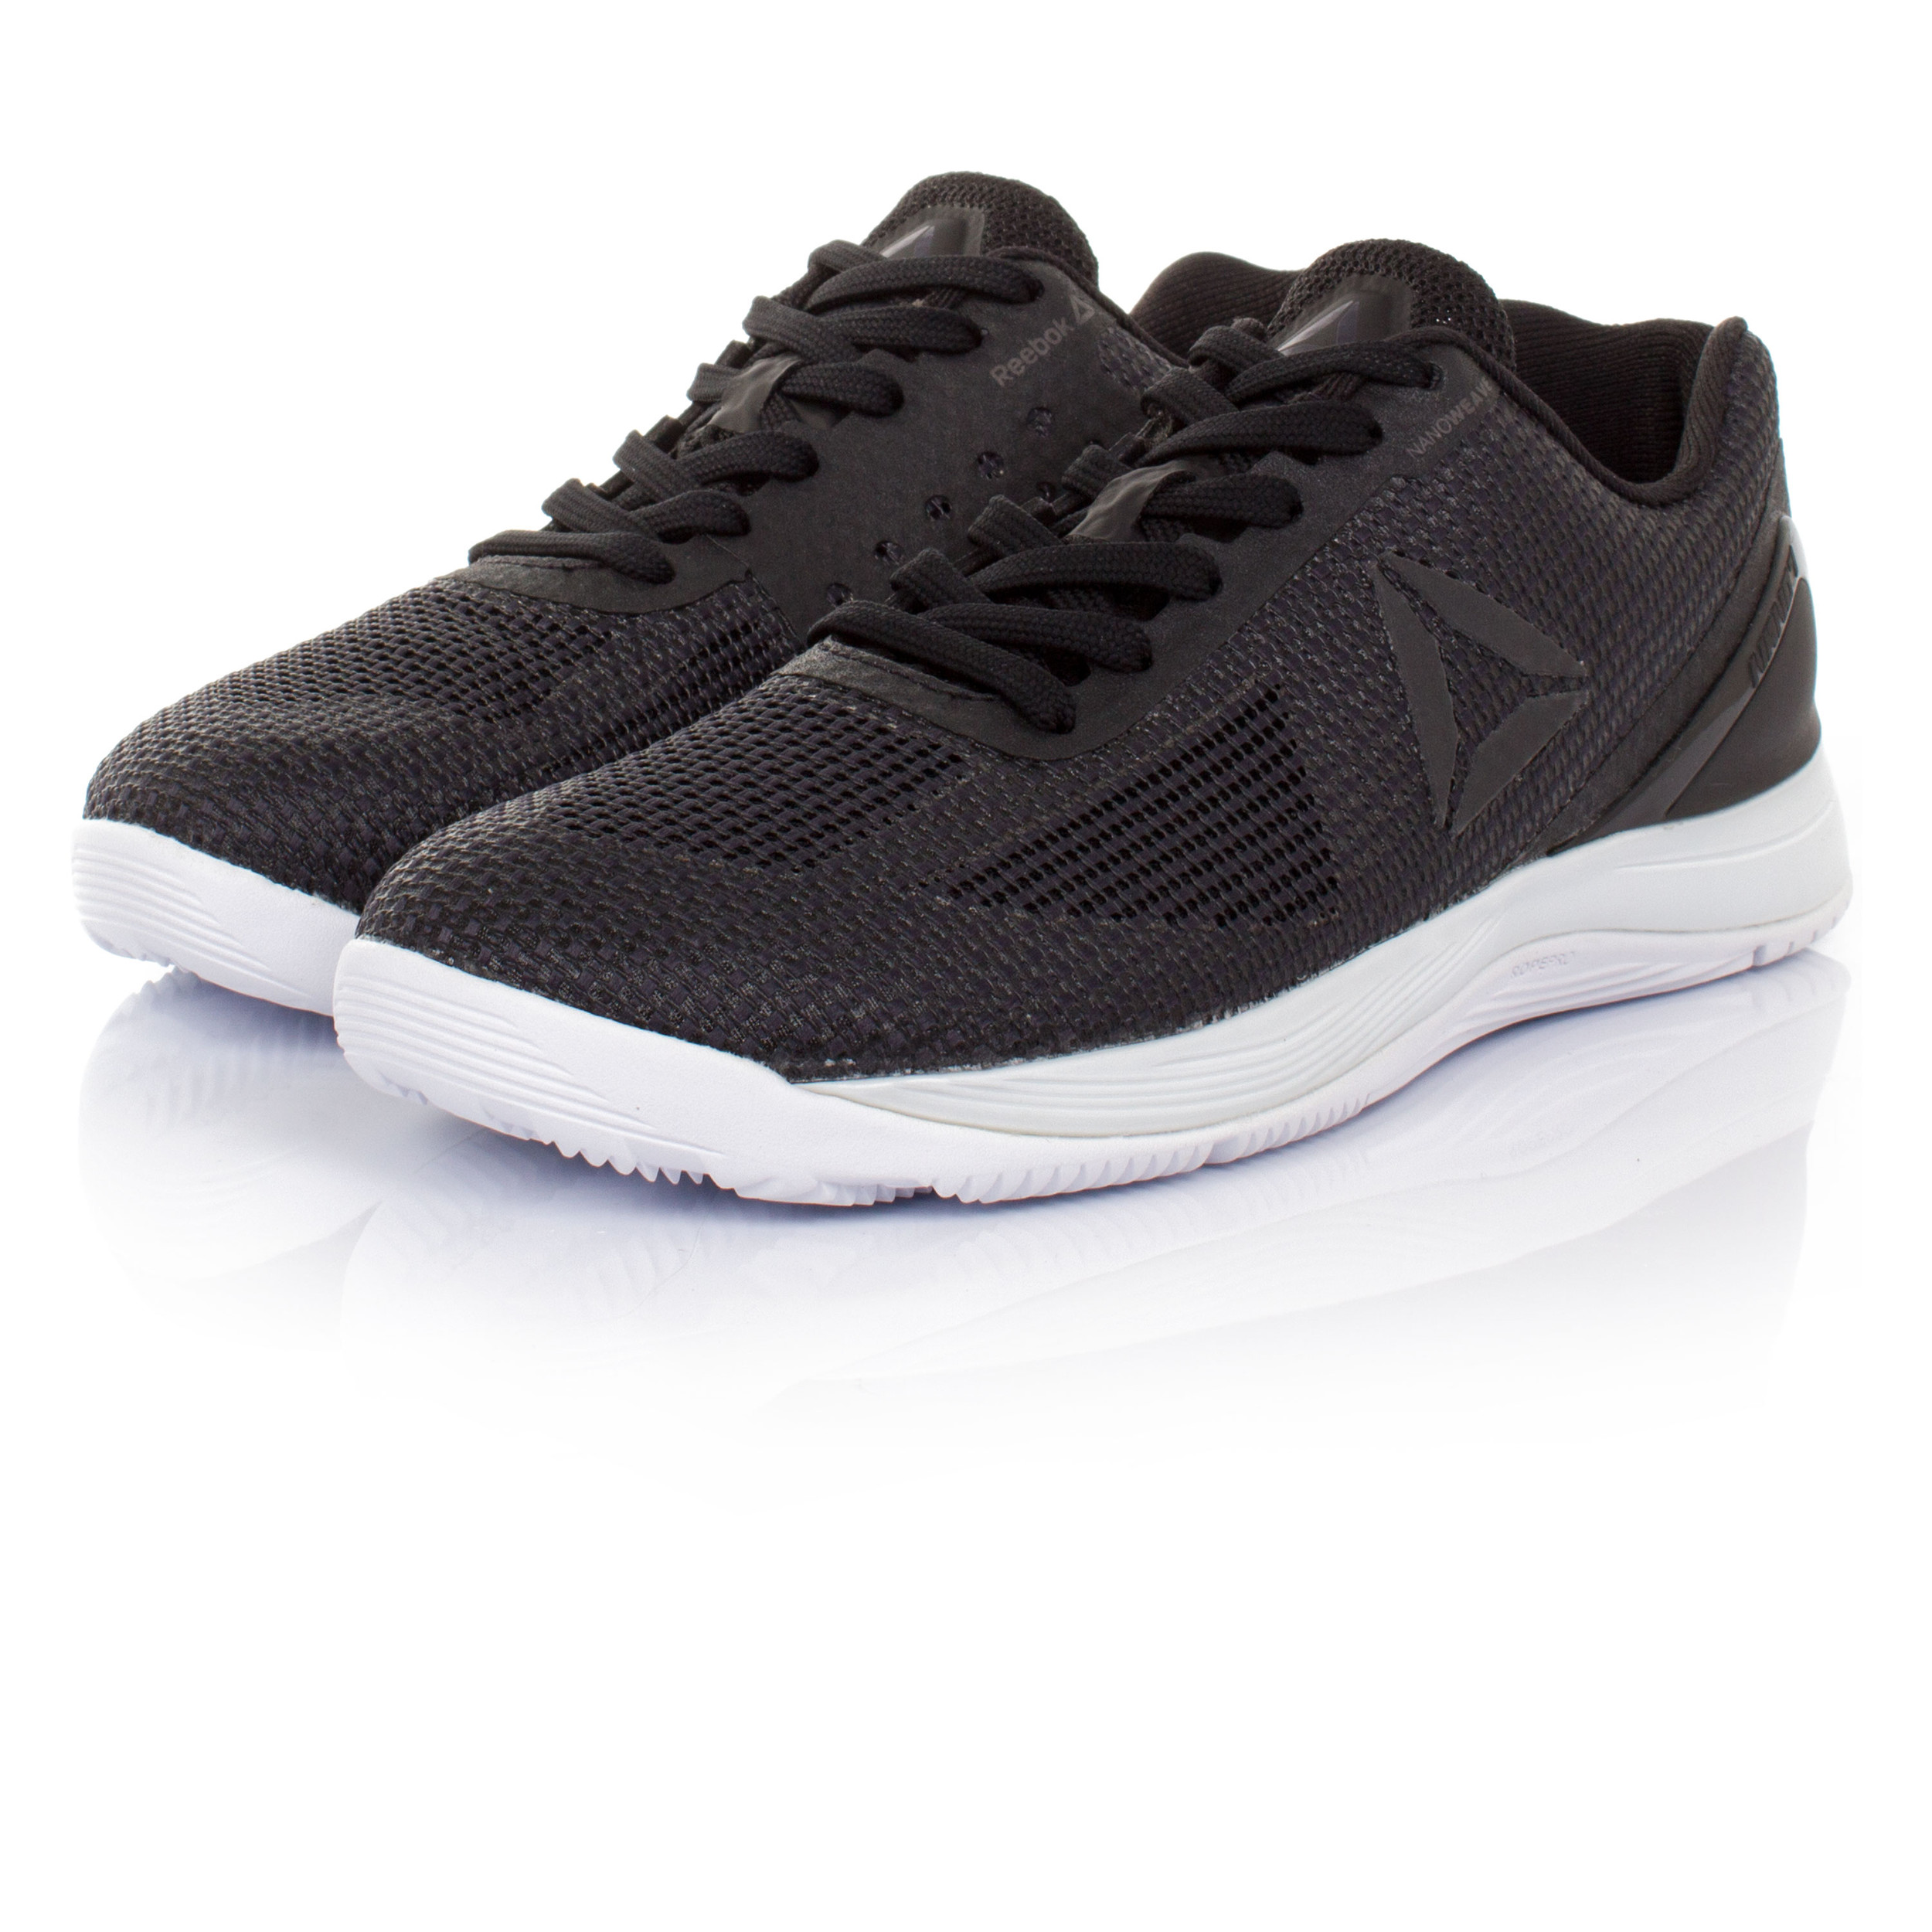 3c9f4ad1d84 reebok nano 7 womens price Sale